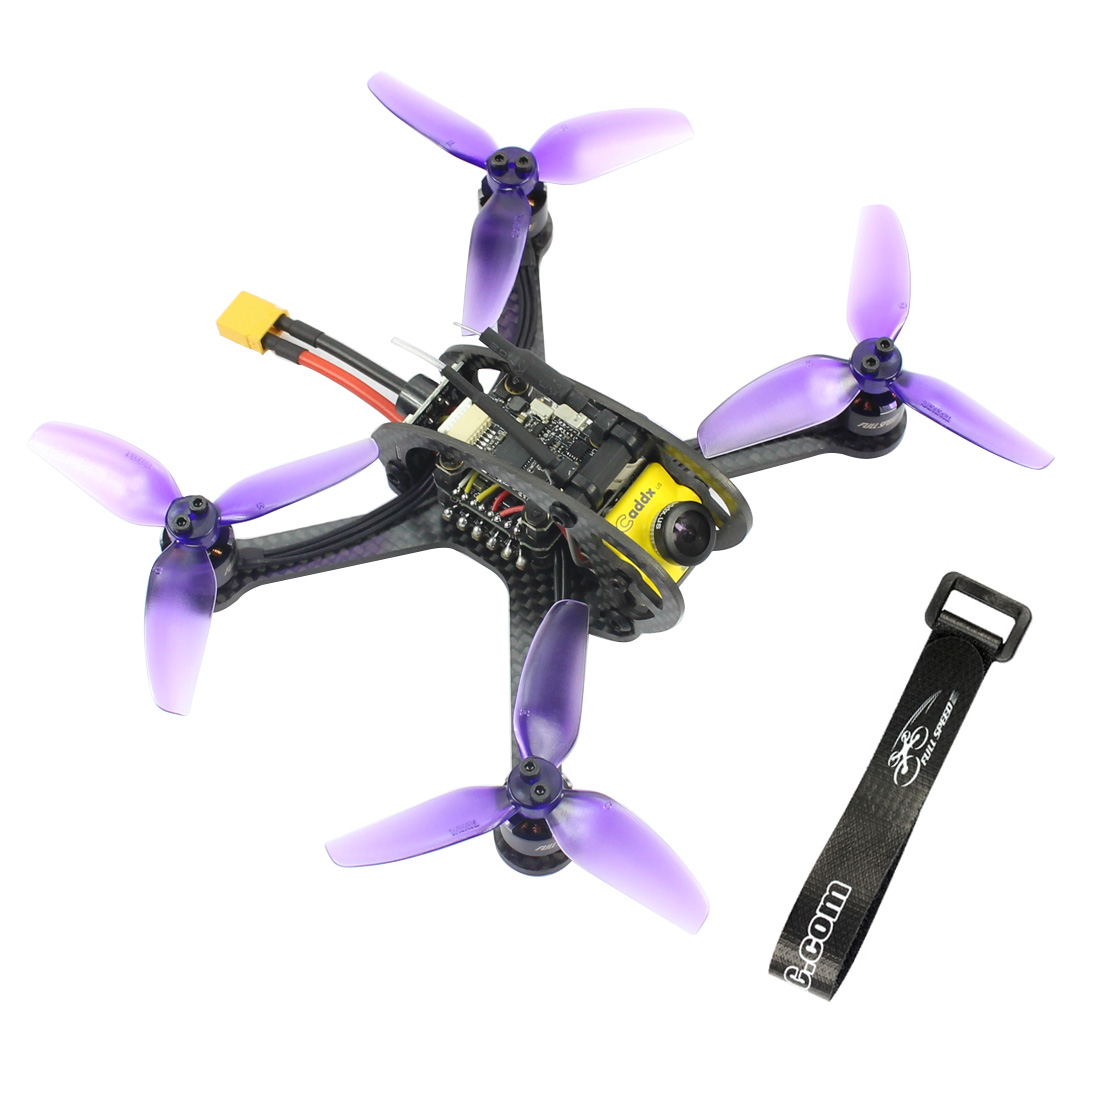 Leader3/3SE 130mm FPV RC Avions Mini Drone F4 OSD 28A BLHeli_S 48CH 600 mw Caddx Micro F1 PNP/BNF pour FRSKY FLYSKY Copter